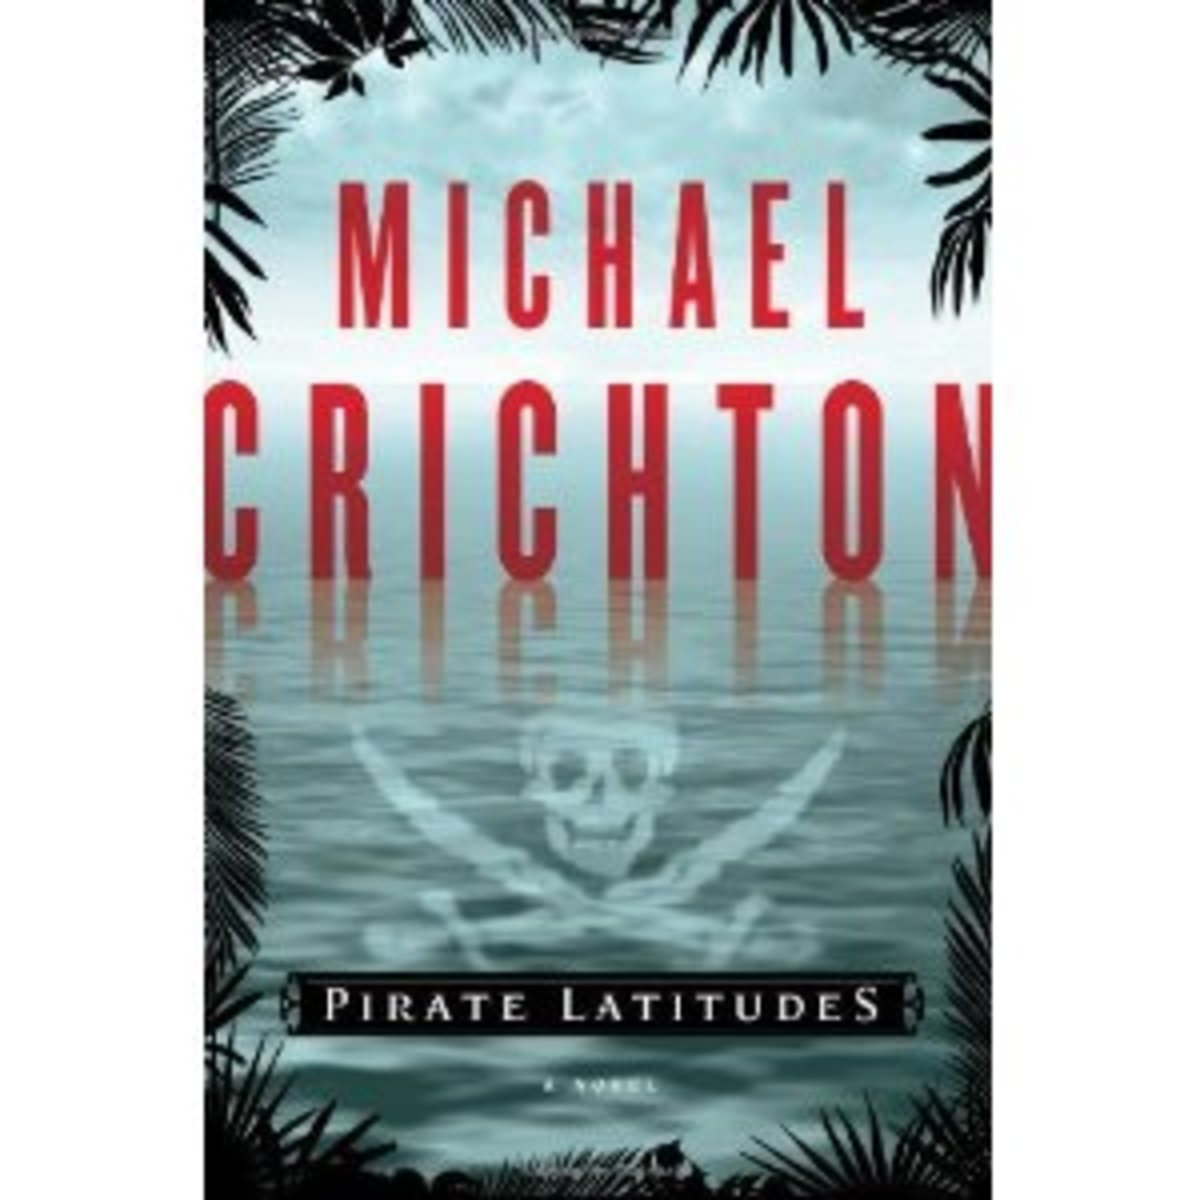 pirate-latitudes-book-review